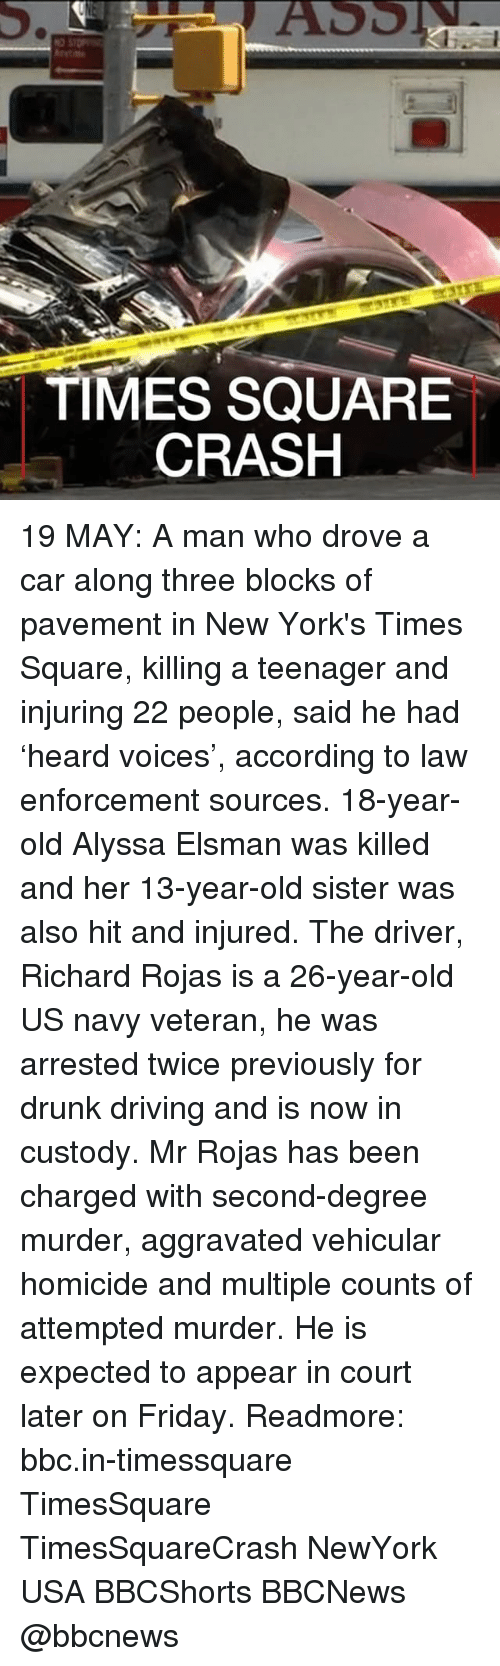 drunk driving: TIMES SQUARE  CRASH 19 MAY: A man who drove a car along three blocks of pavement in New York's Times Square, killing a teenager and injuring 22 people, said he had 'heard voices', according to law enforcement sources. 18-year-old Alyssa Elsman was killed and her 13-year-old sister was also hit and injured. The driver, Richard Rojas is a 26-year-old US navy veteran, he was arrested twice previously for drunk driving and is now in custody. Mr Rojas has been charged with second-degree murder, aggravated vehicular homicide and multiple counts of attempted murder. He is expected to appear in court later on Friday. Readmore: bbc.in-timessquare TimesSquare TimesSquareCrash NewYork USA BBCShorts BBCNews @bbcnews